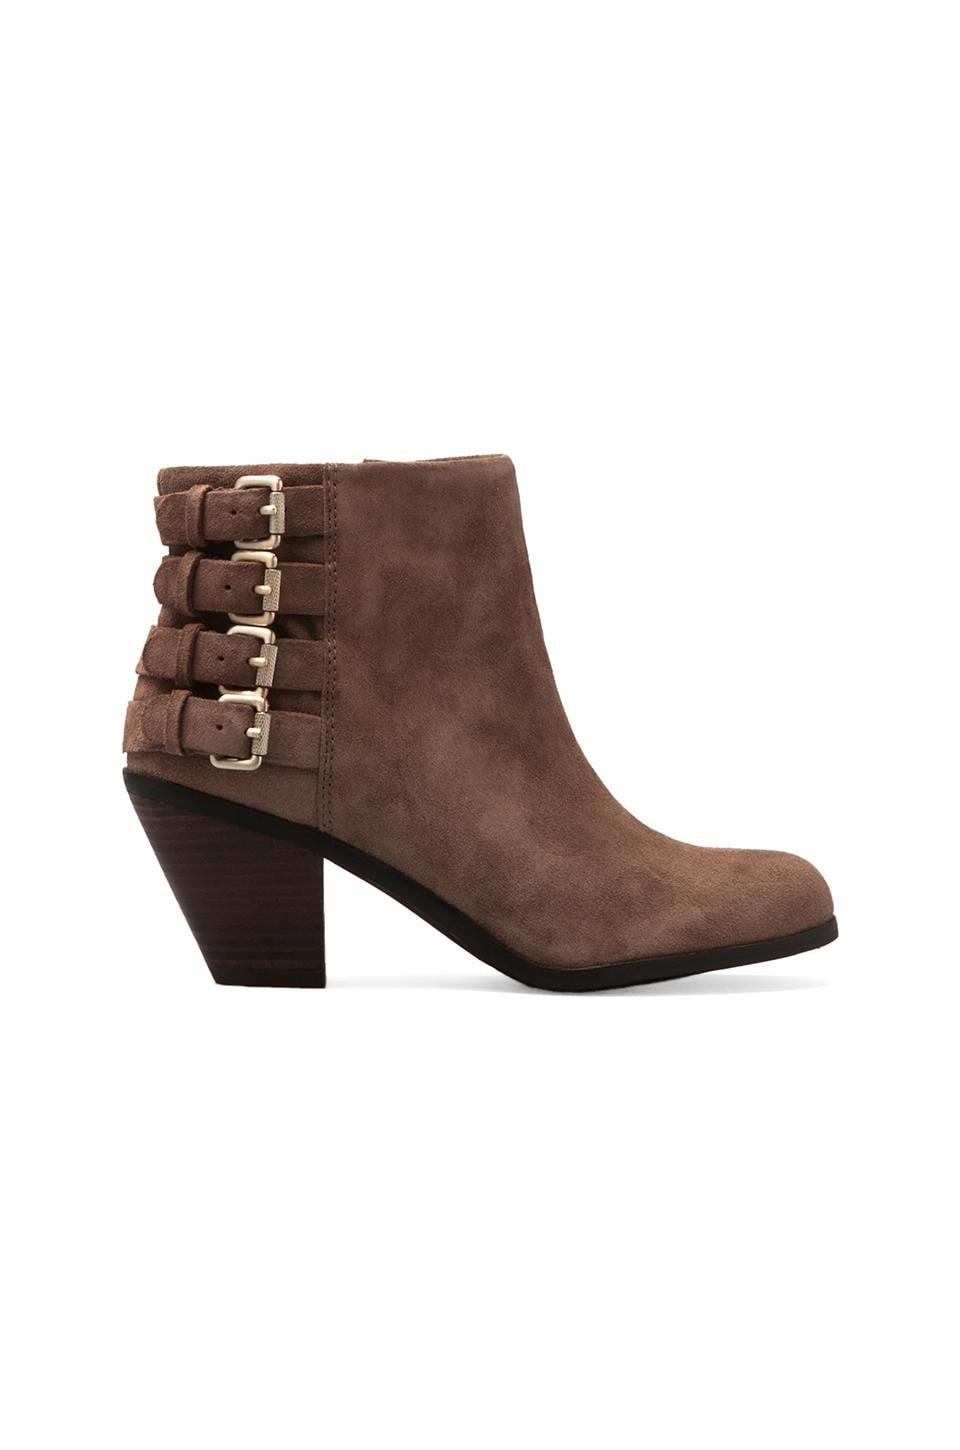 Sam Edelman Lucca Boot in Beach